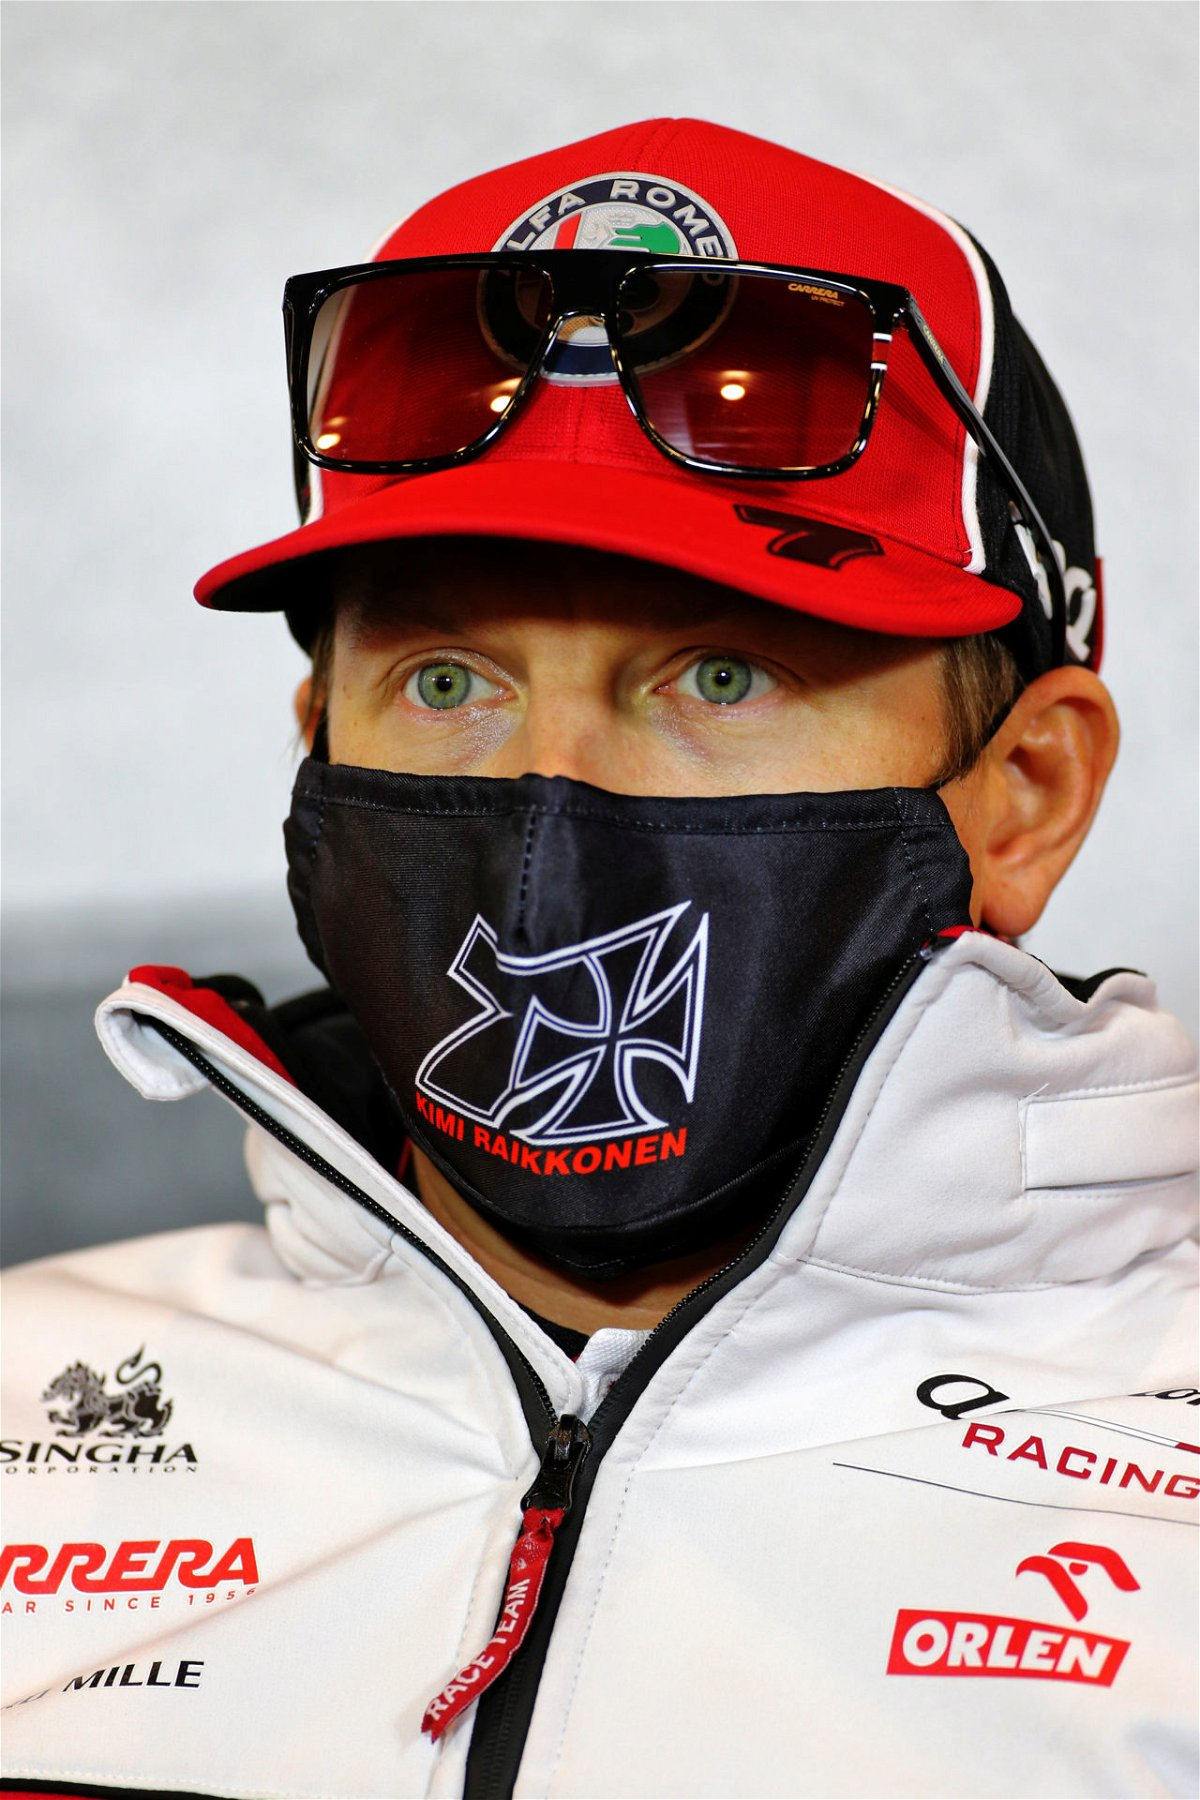 Kimi Raikkonen during the Eifel Grand Prix press conference 2020